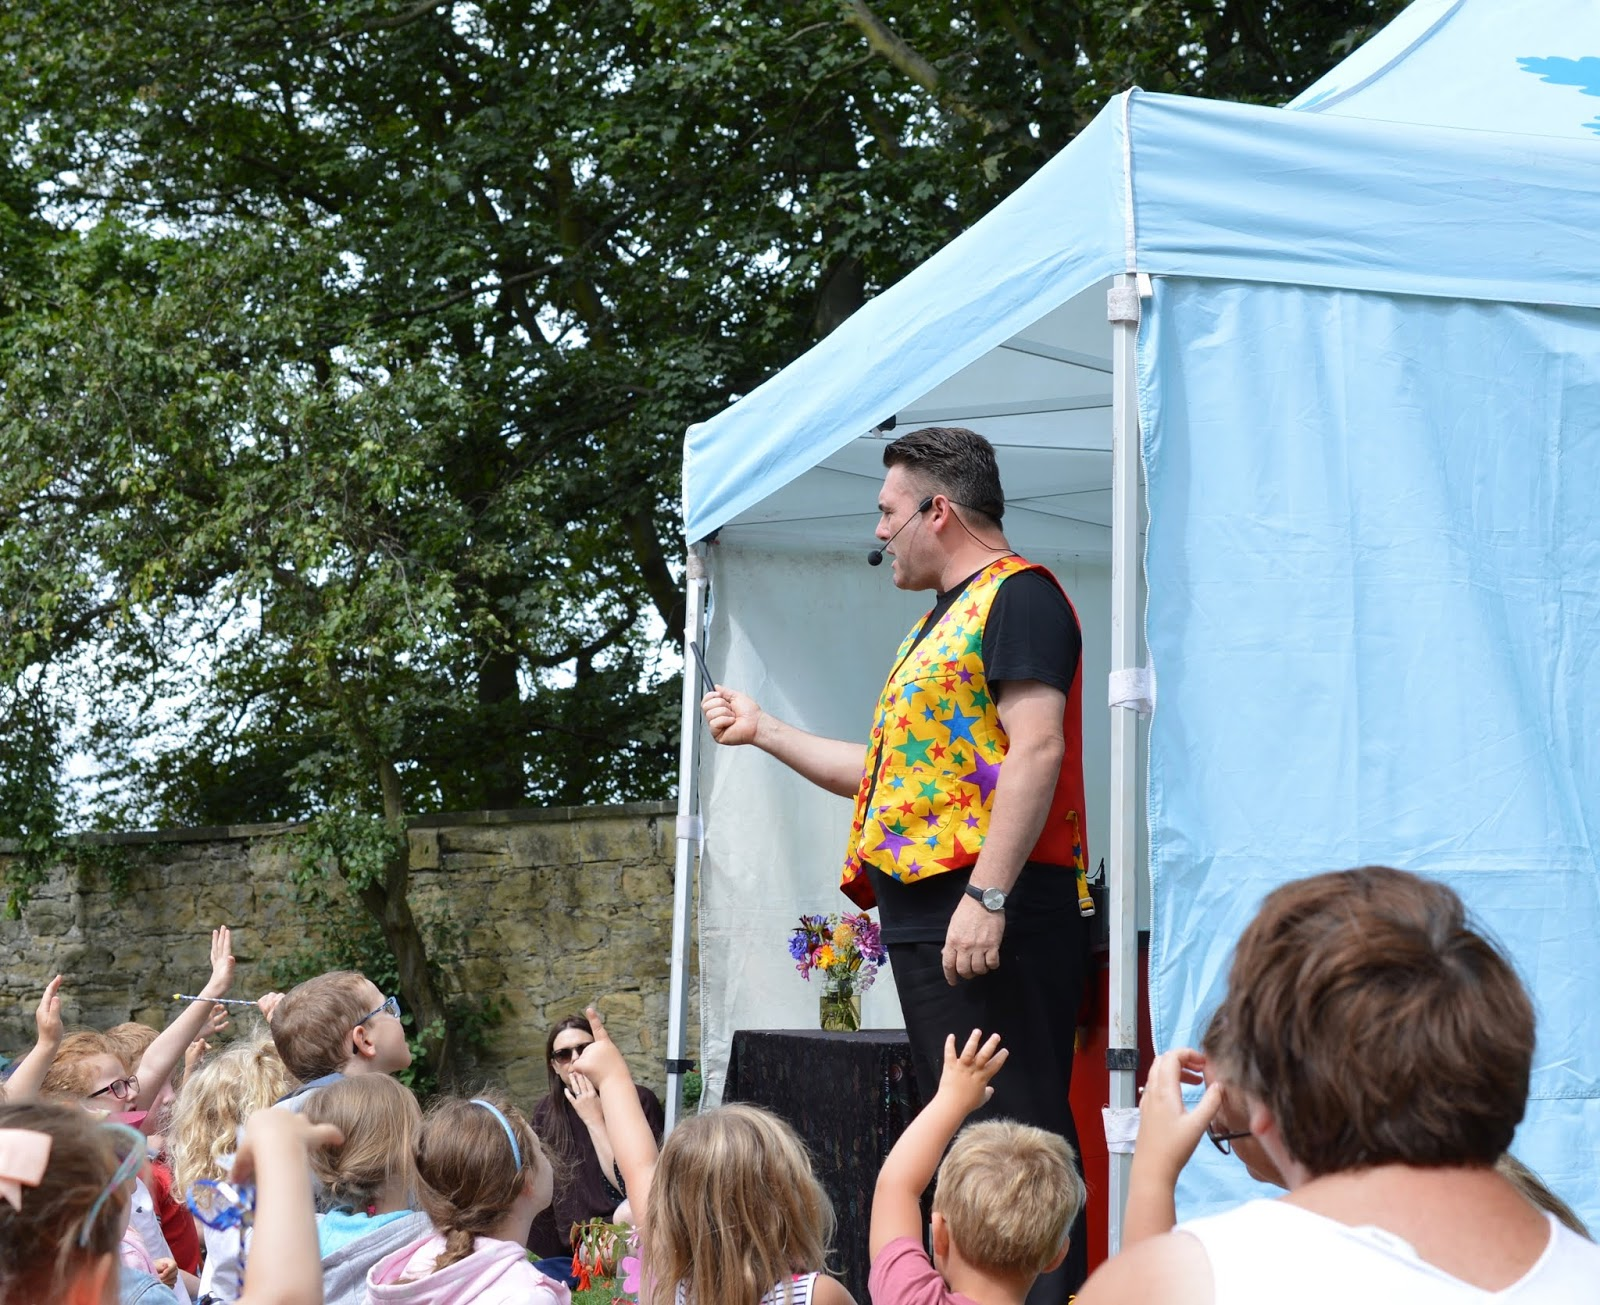 10 Reasons to Visit Seaton Delaval Hall  - magic show